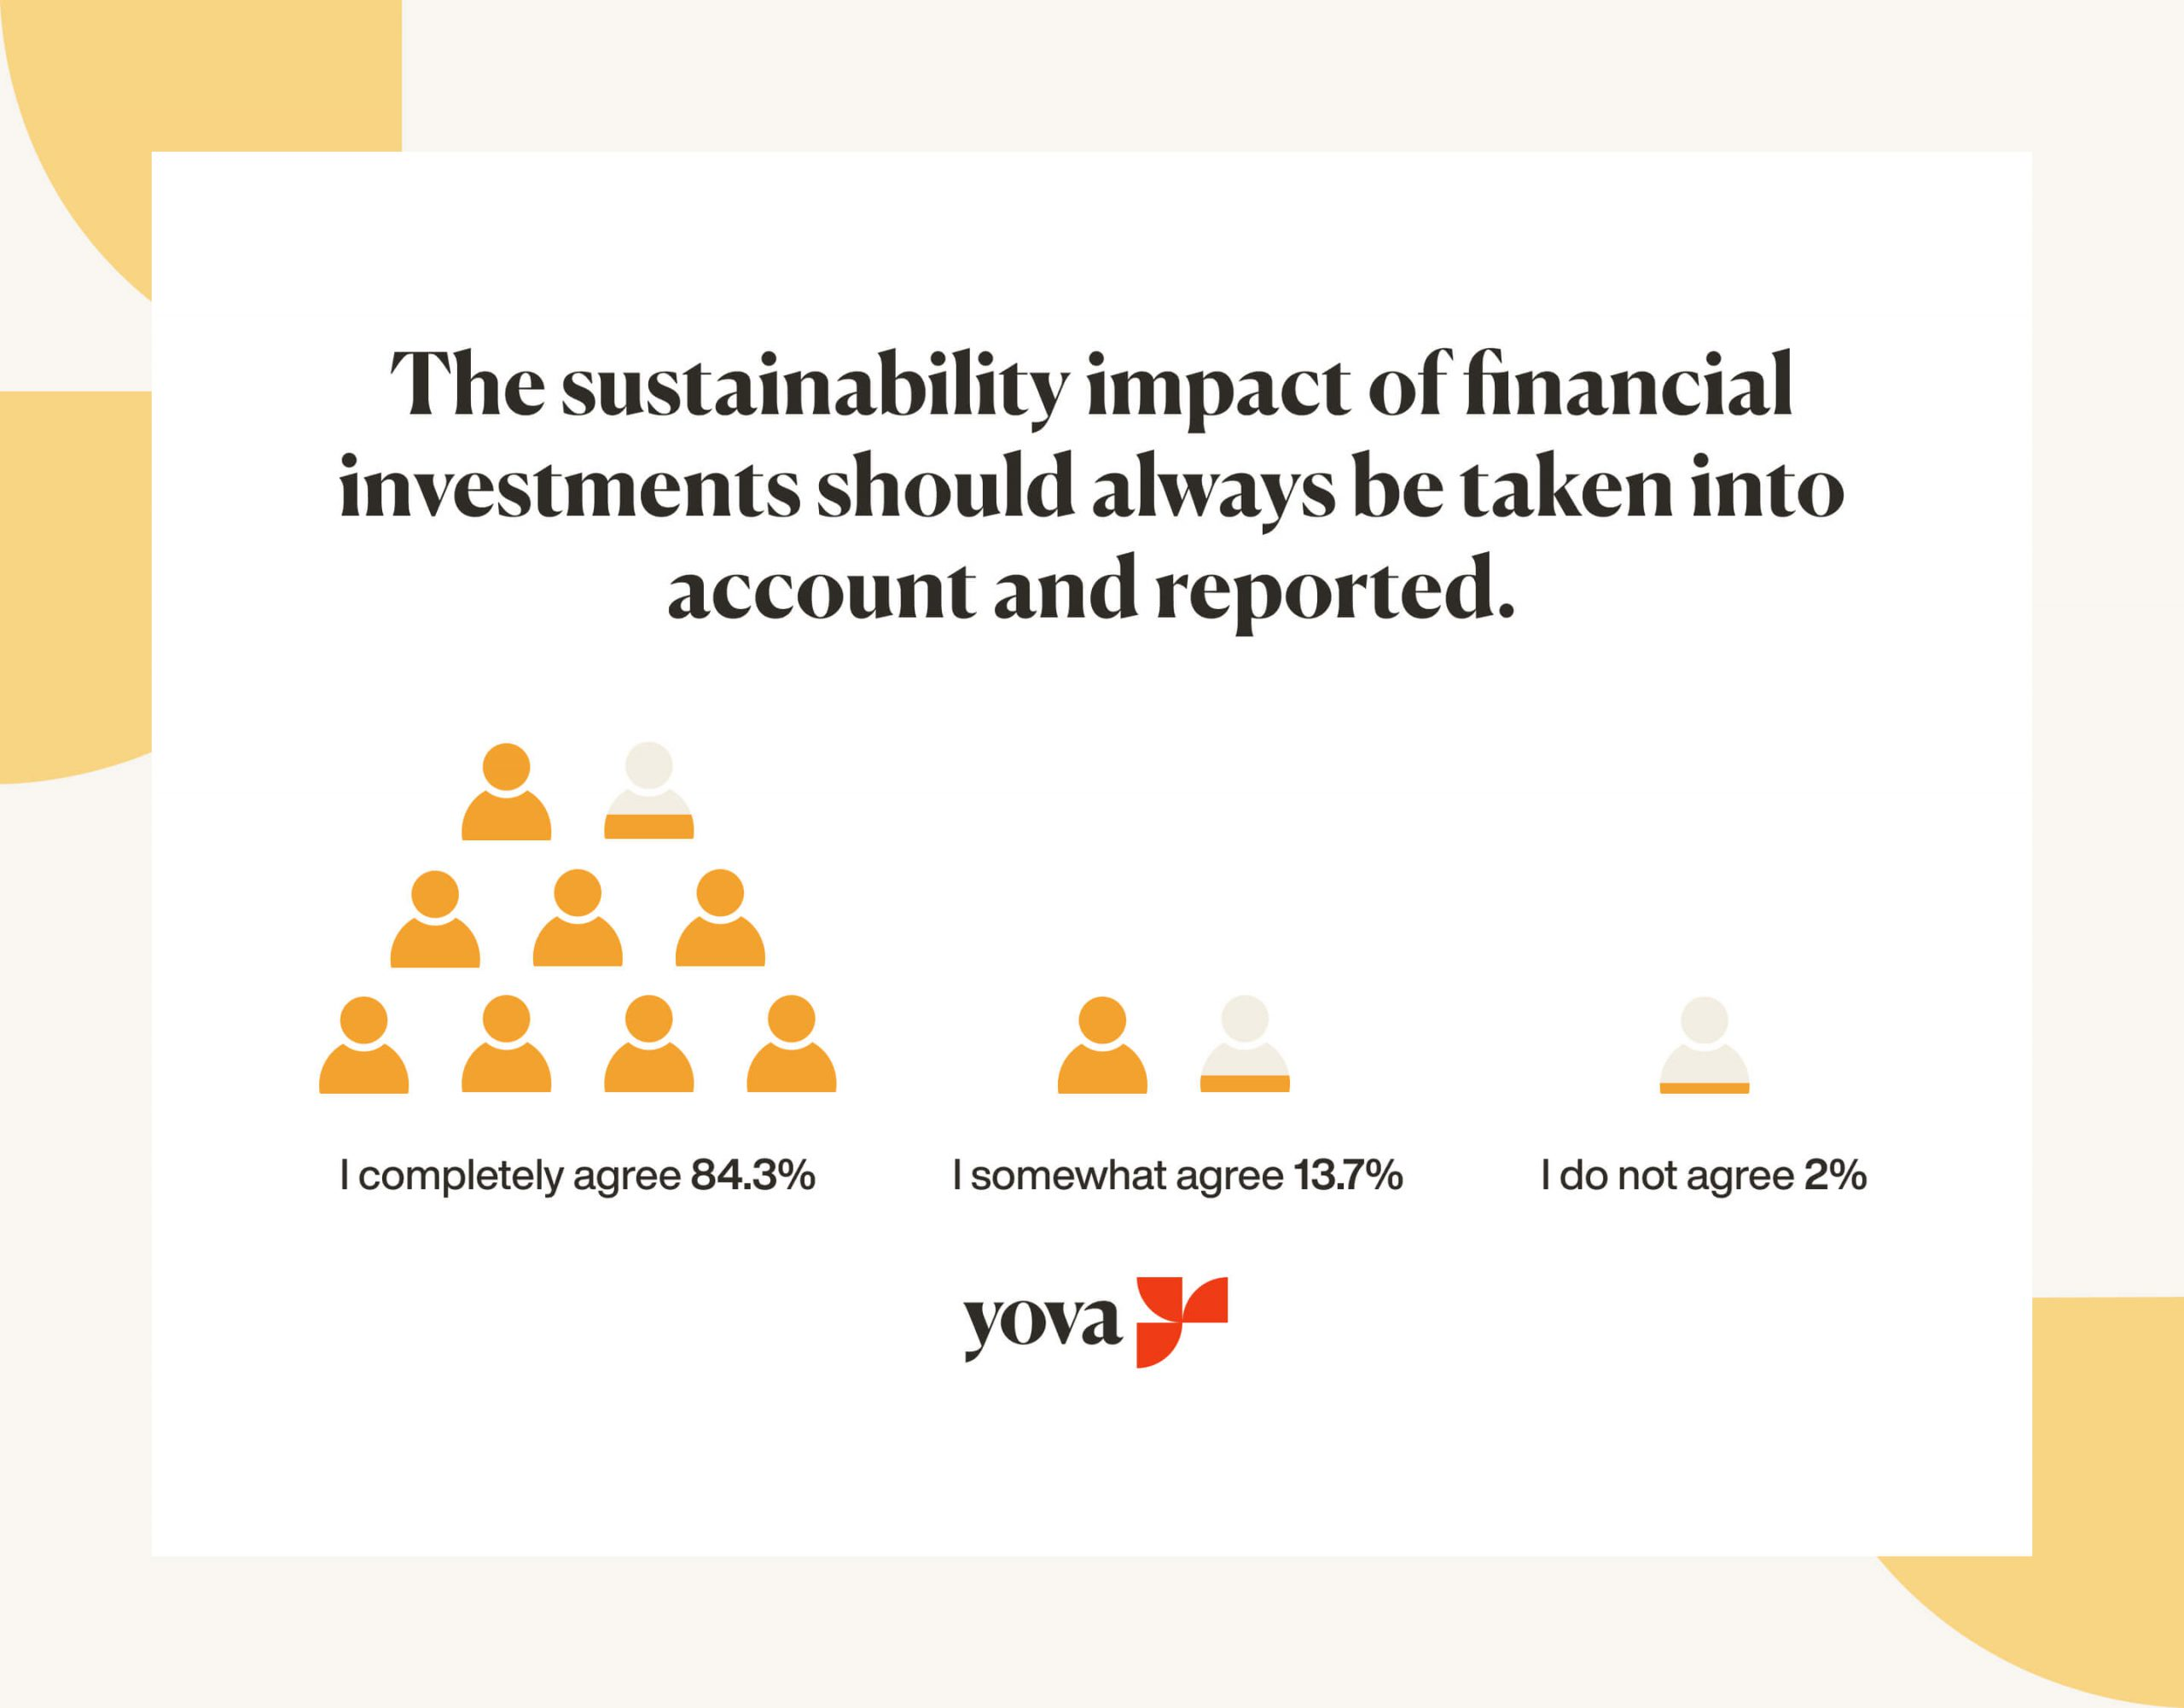 Graph showing that sustainability impact of financial investments should always be reported